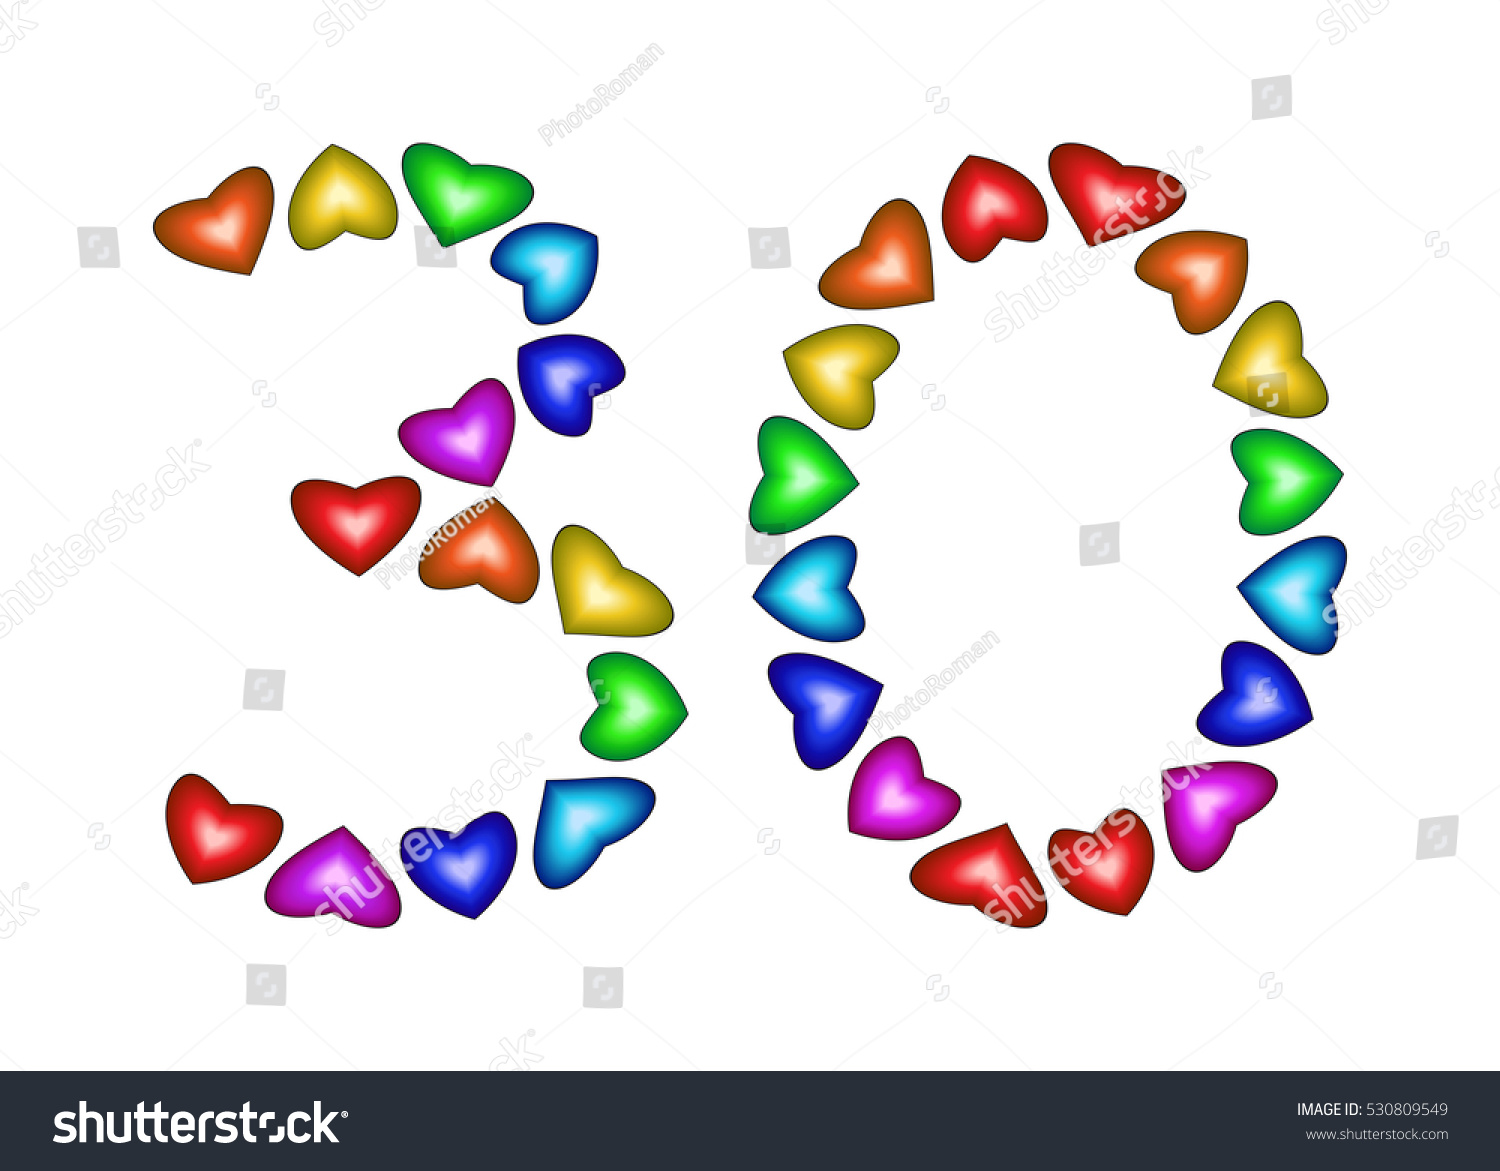 Number 30 Colorful Hearts On White Stock Illustration 530809549